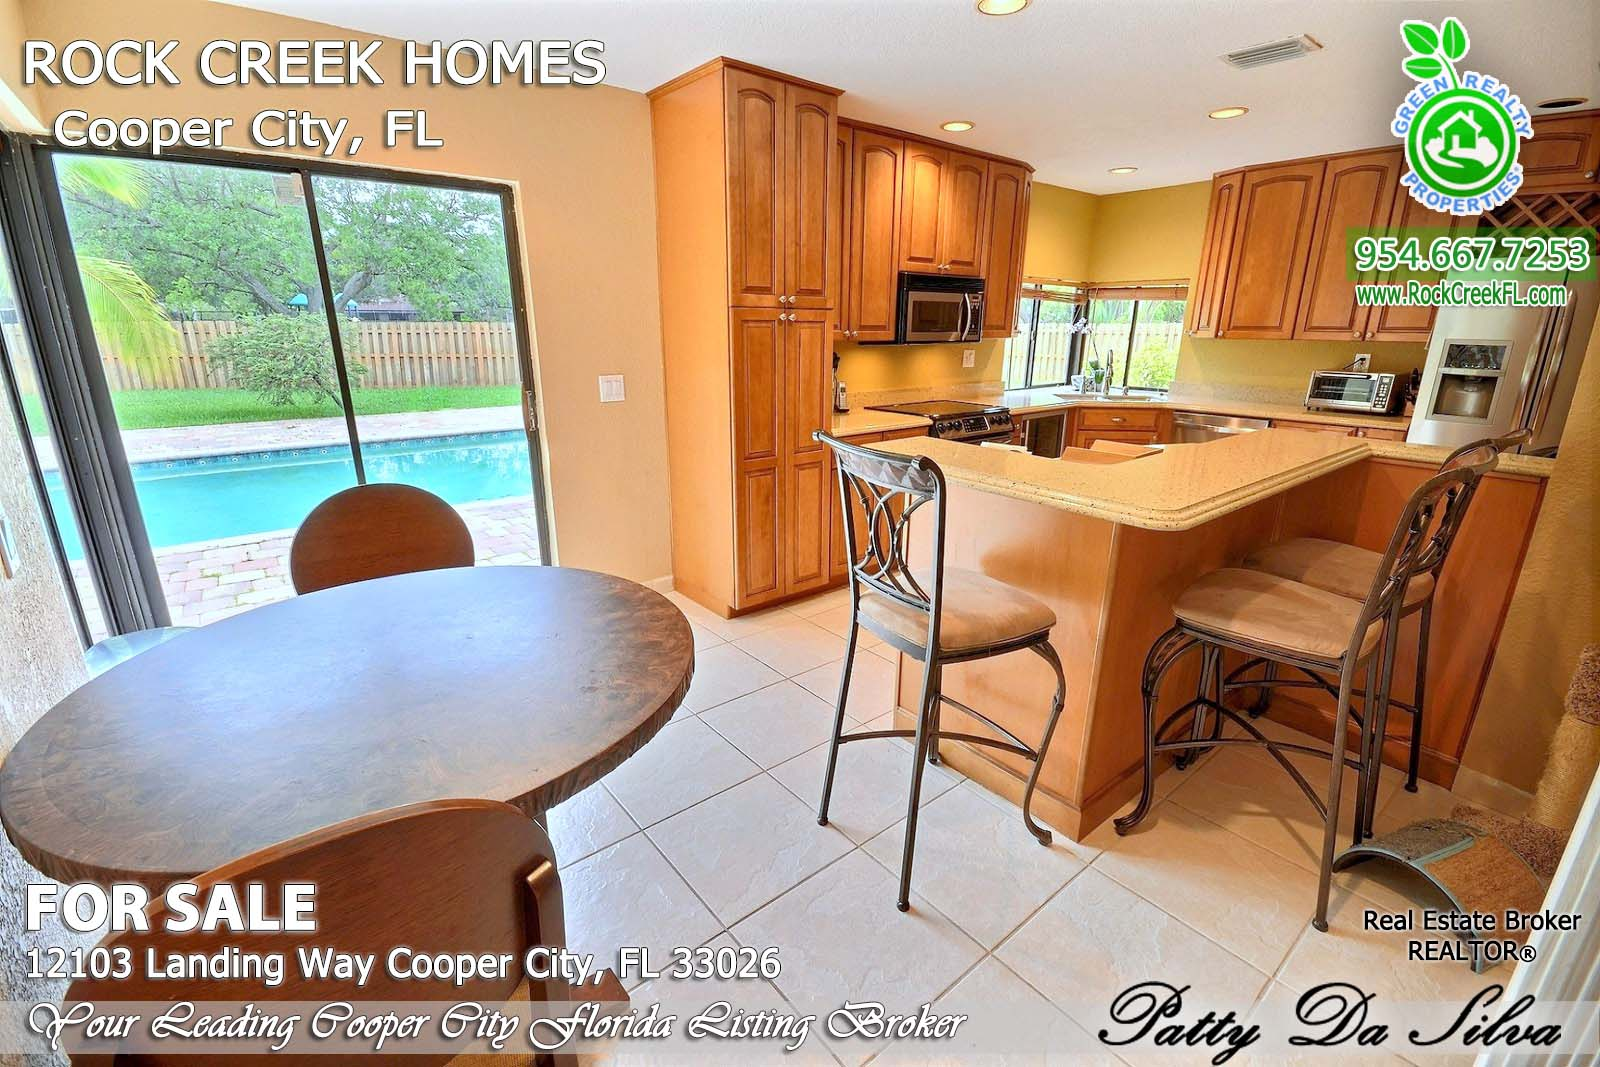 12103 Landing Way, Cooper City FL 33026 (16)